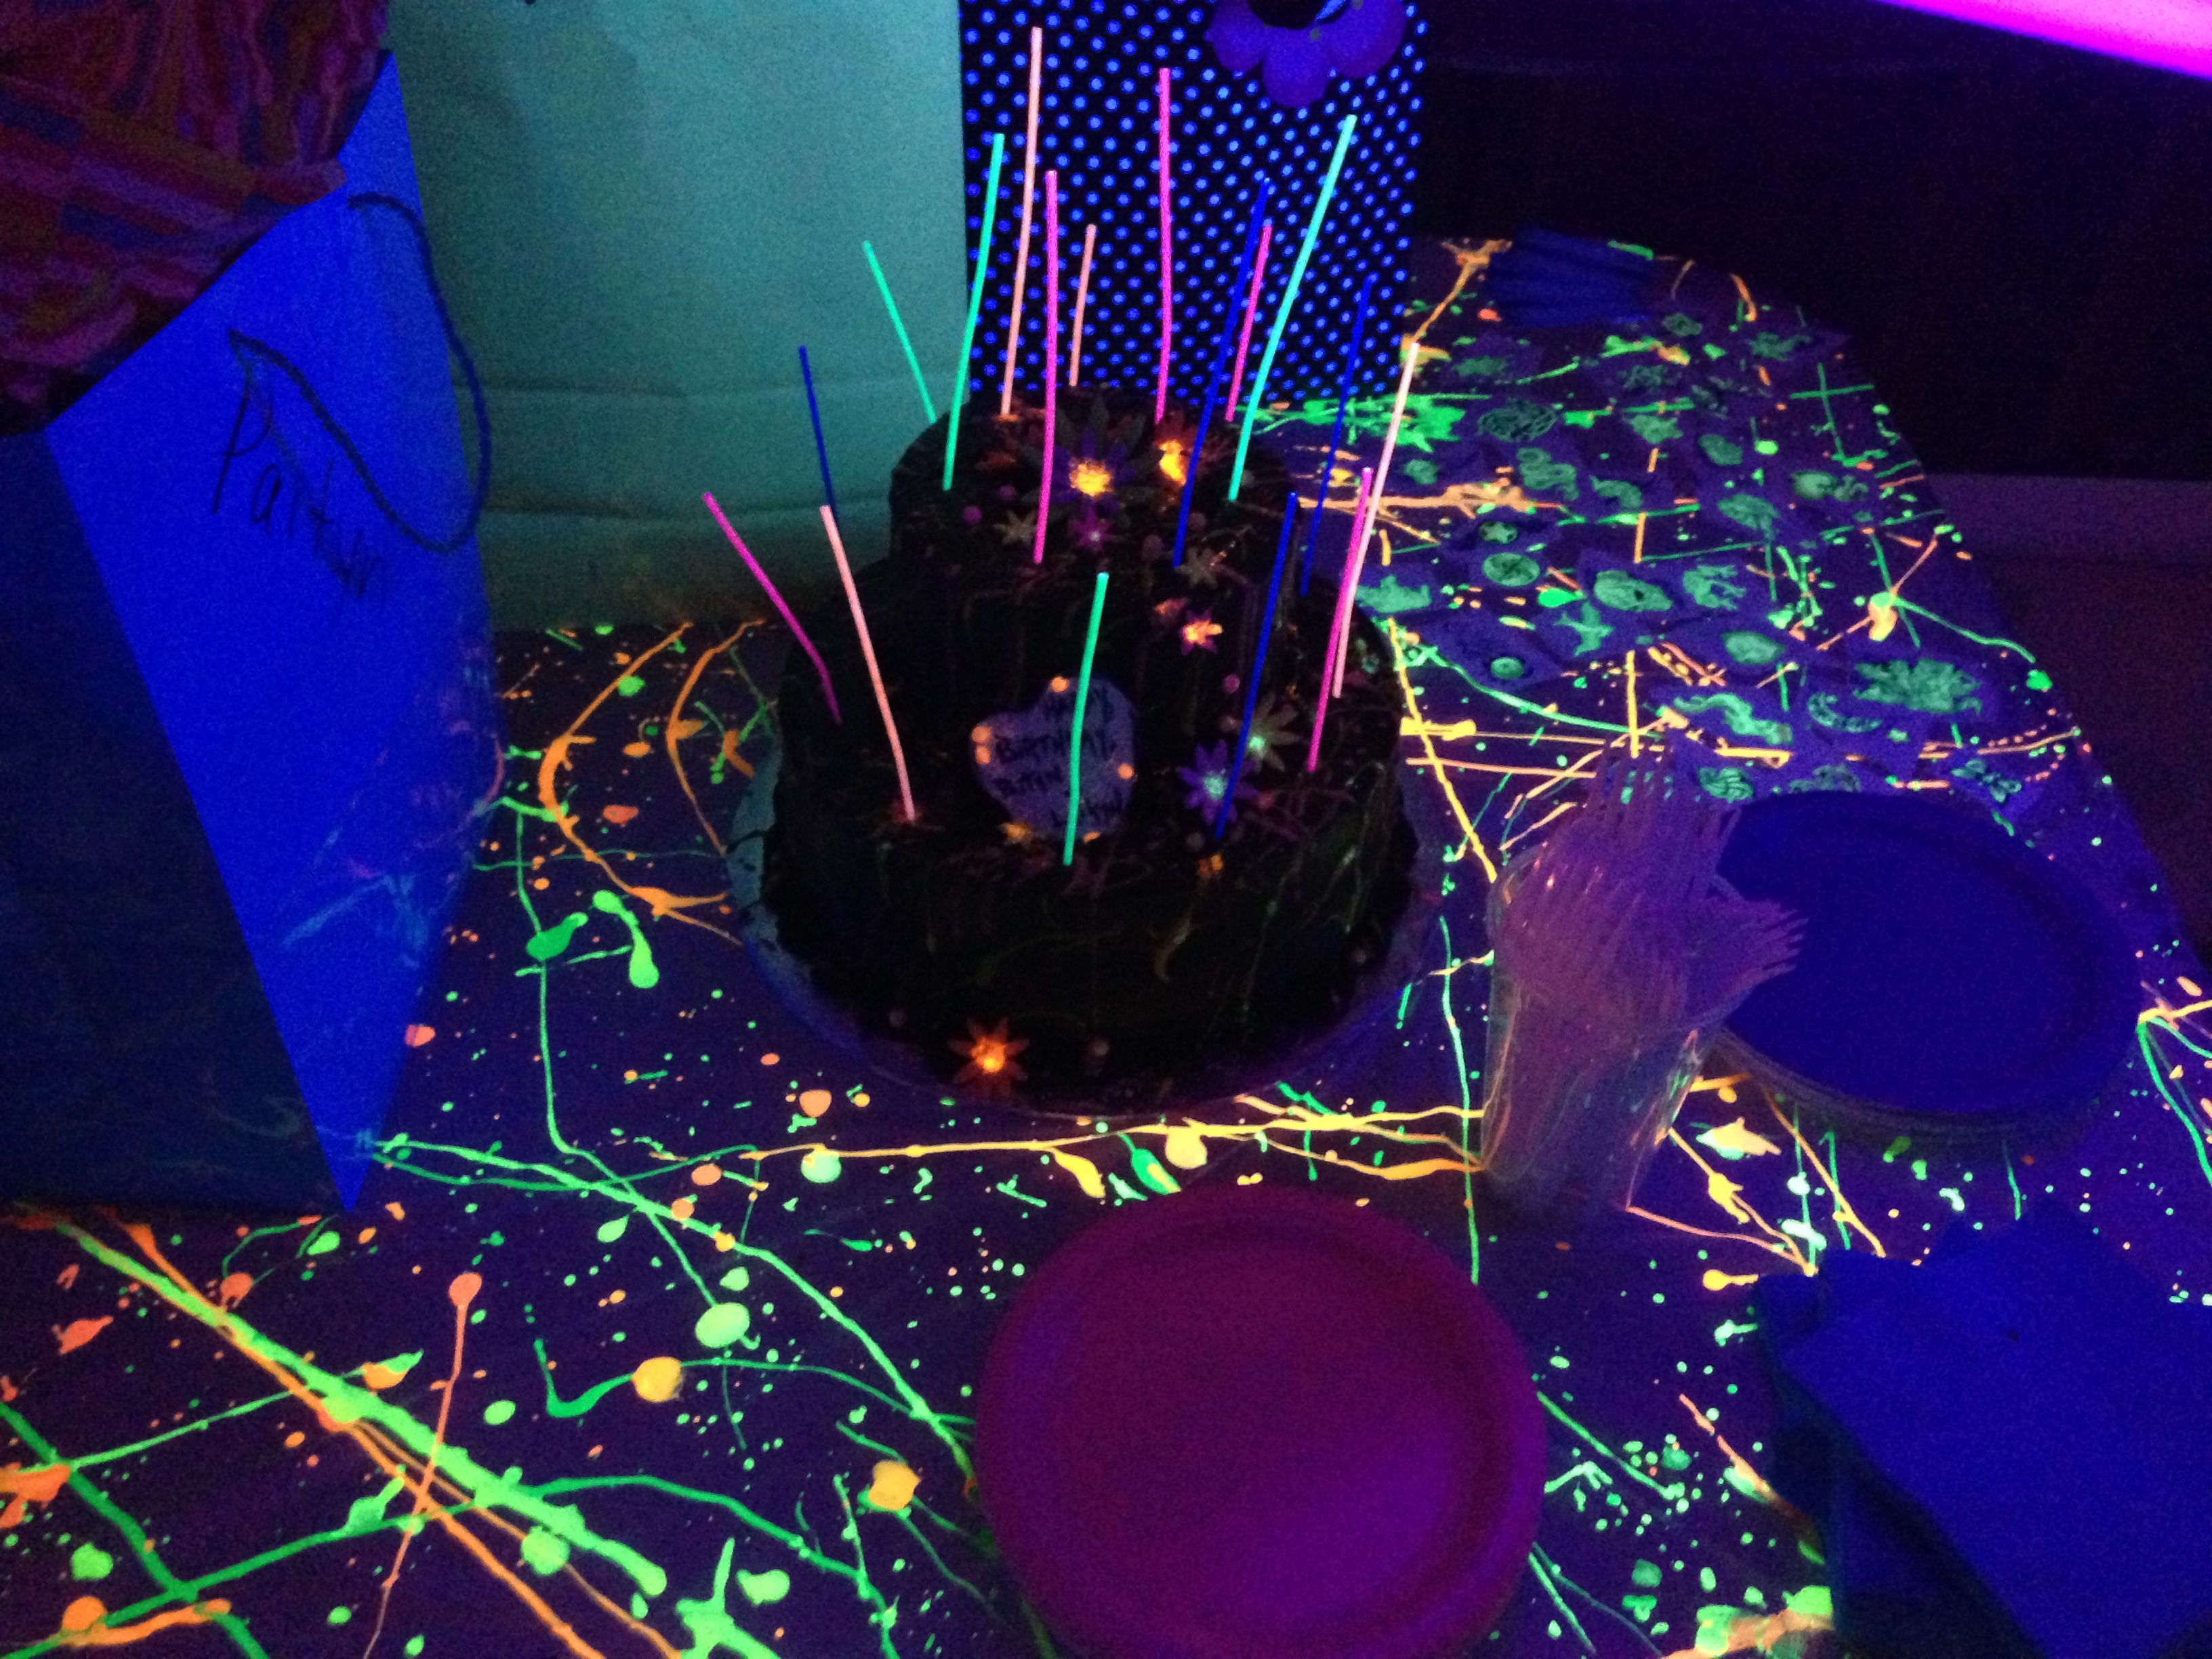 Glow in the dark party splatter paint on black paper or table cloths glow in the dark party for 13th floor glow stick